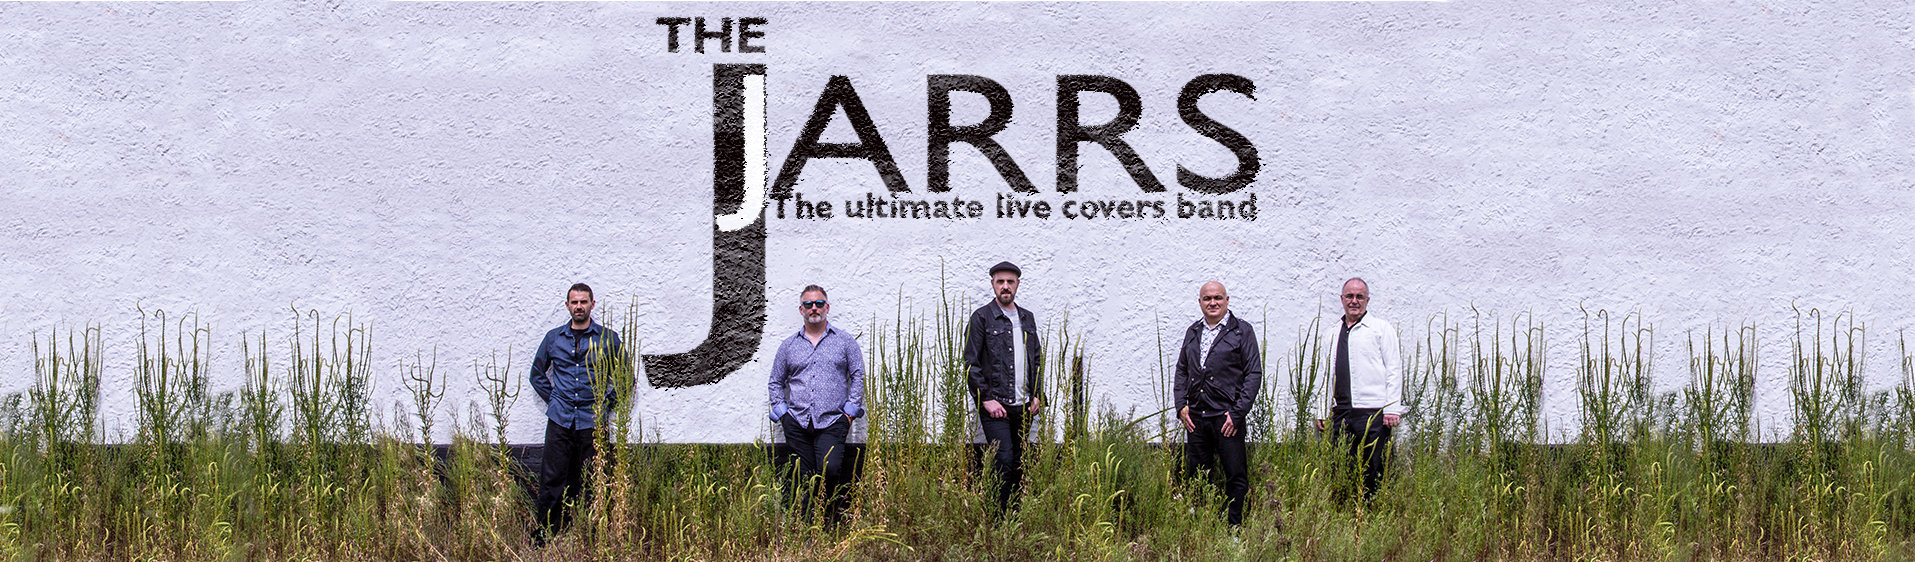 The Jjarrs - The Ultimate Live Party Band in Essex